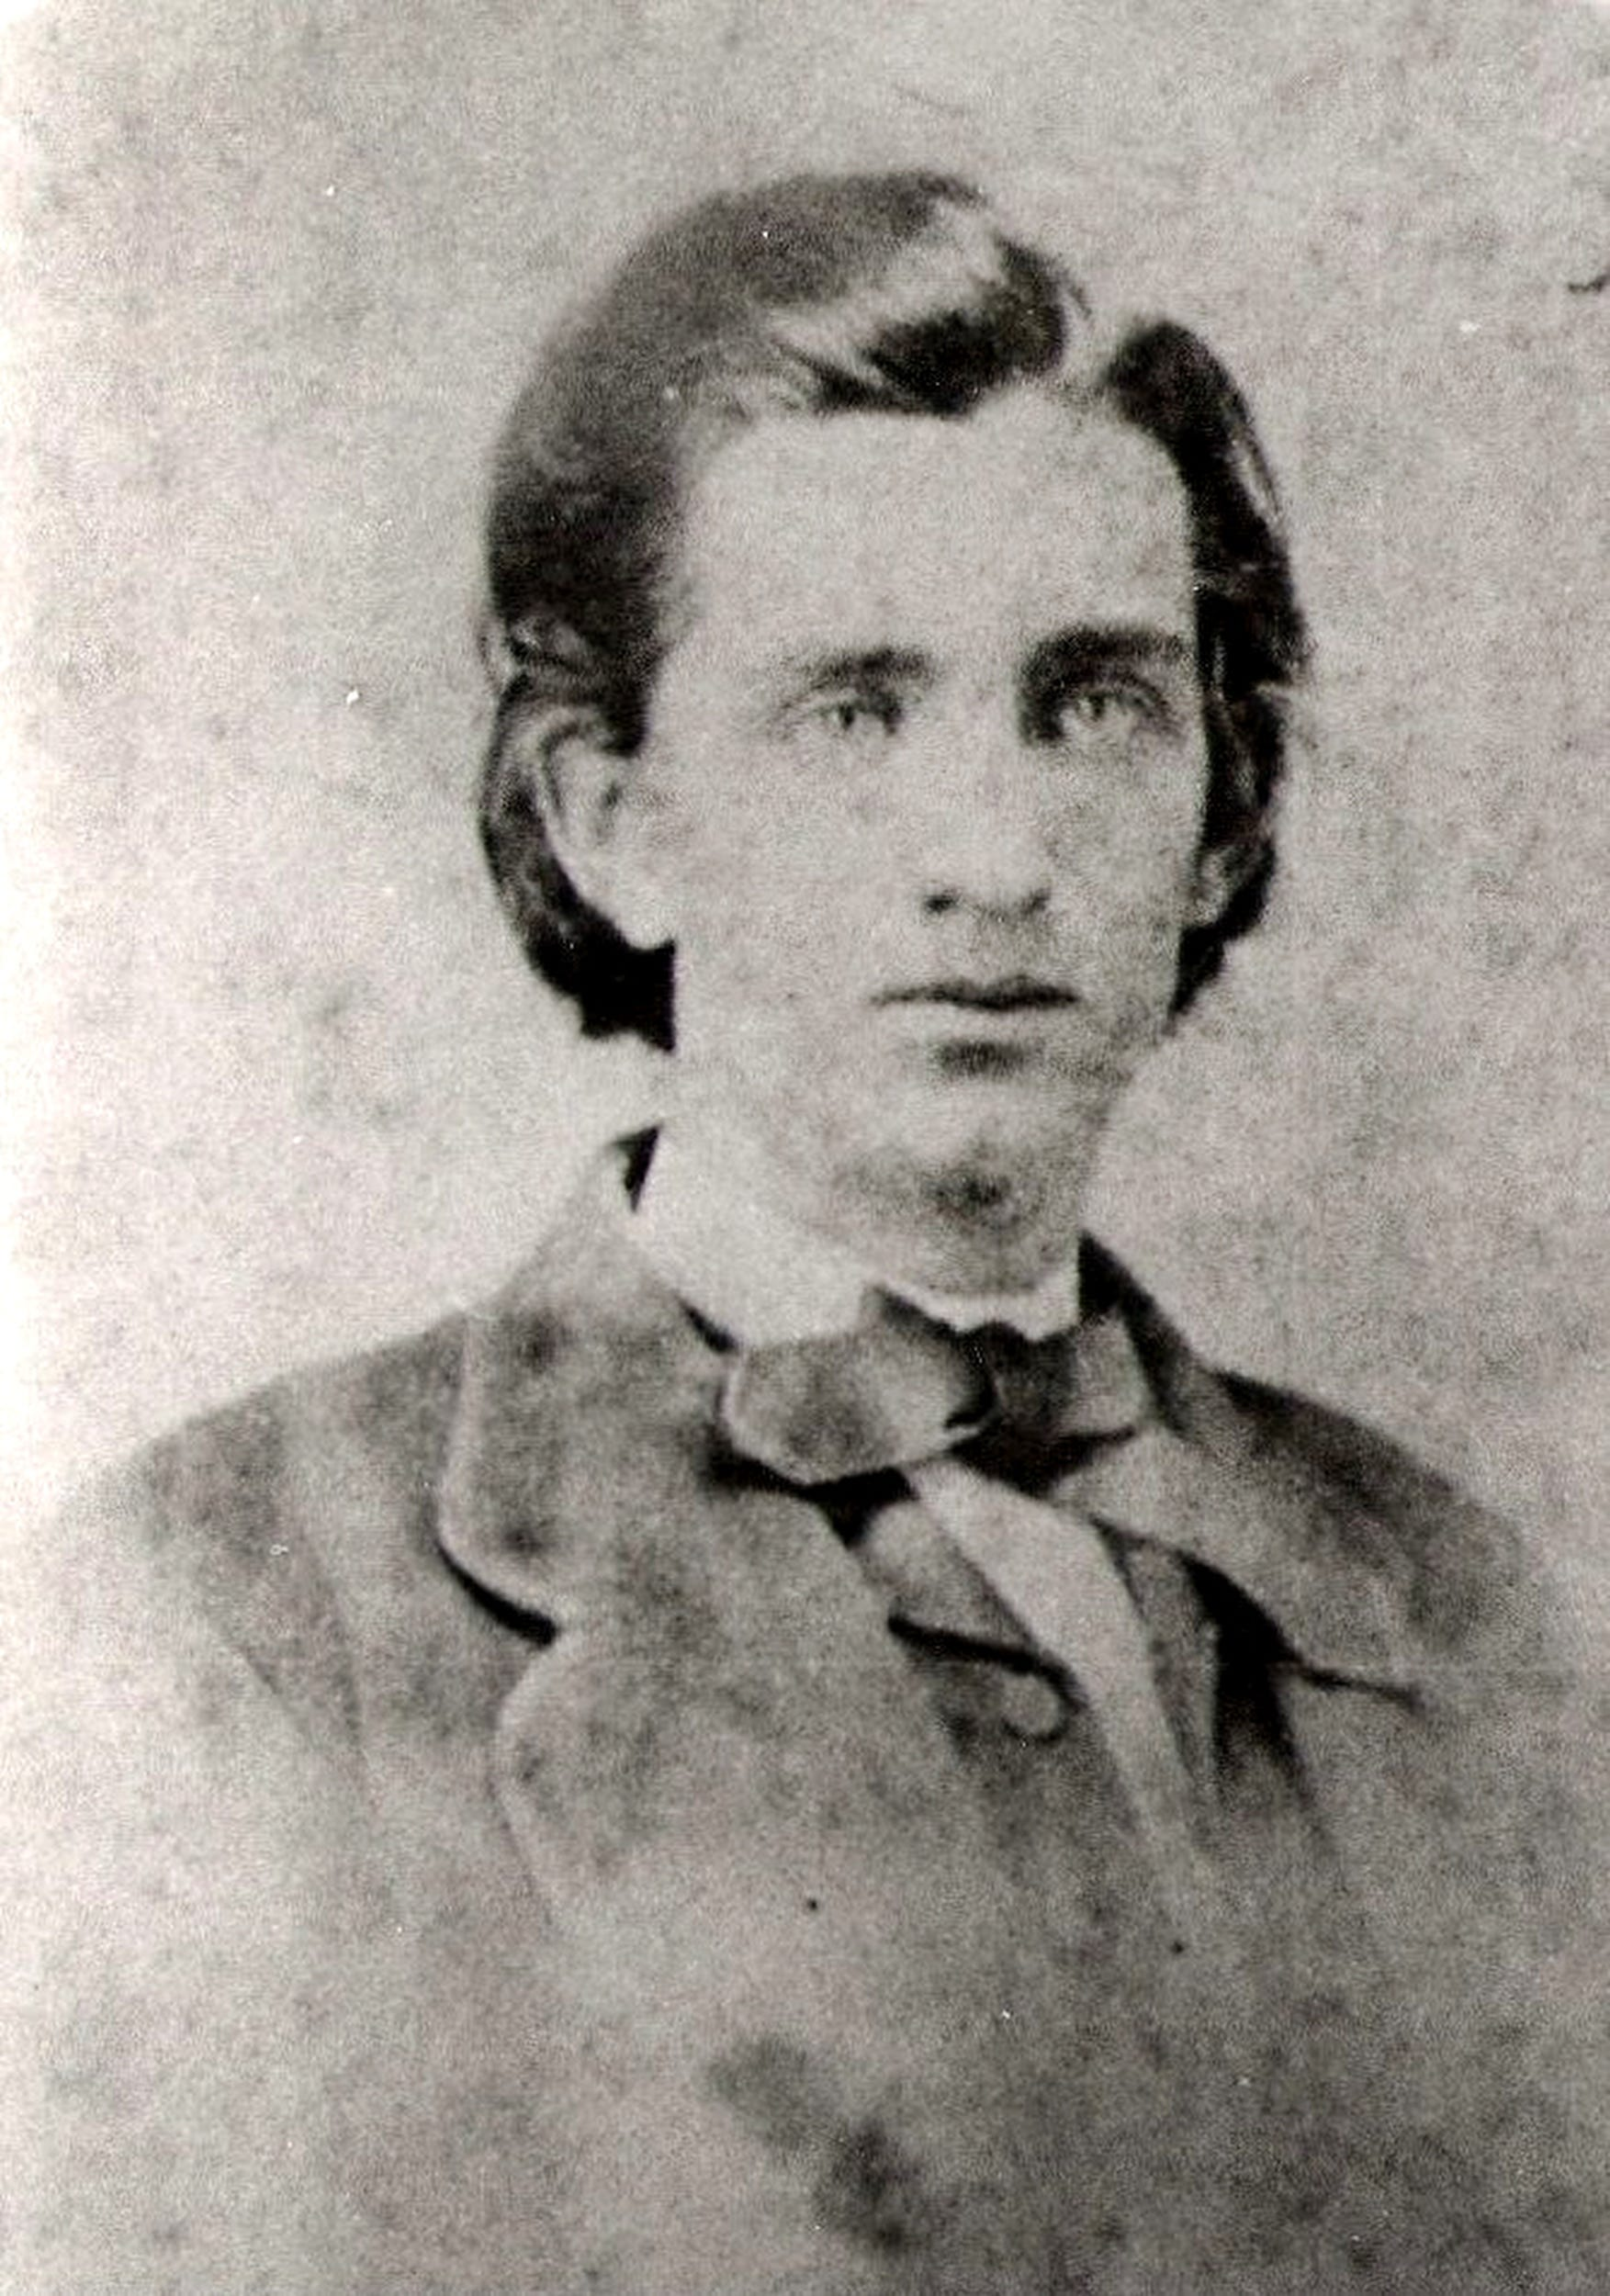 Old portrait of Sam Davis